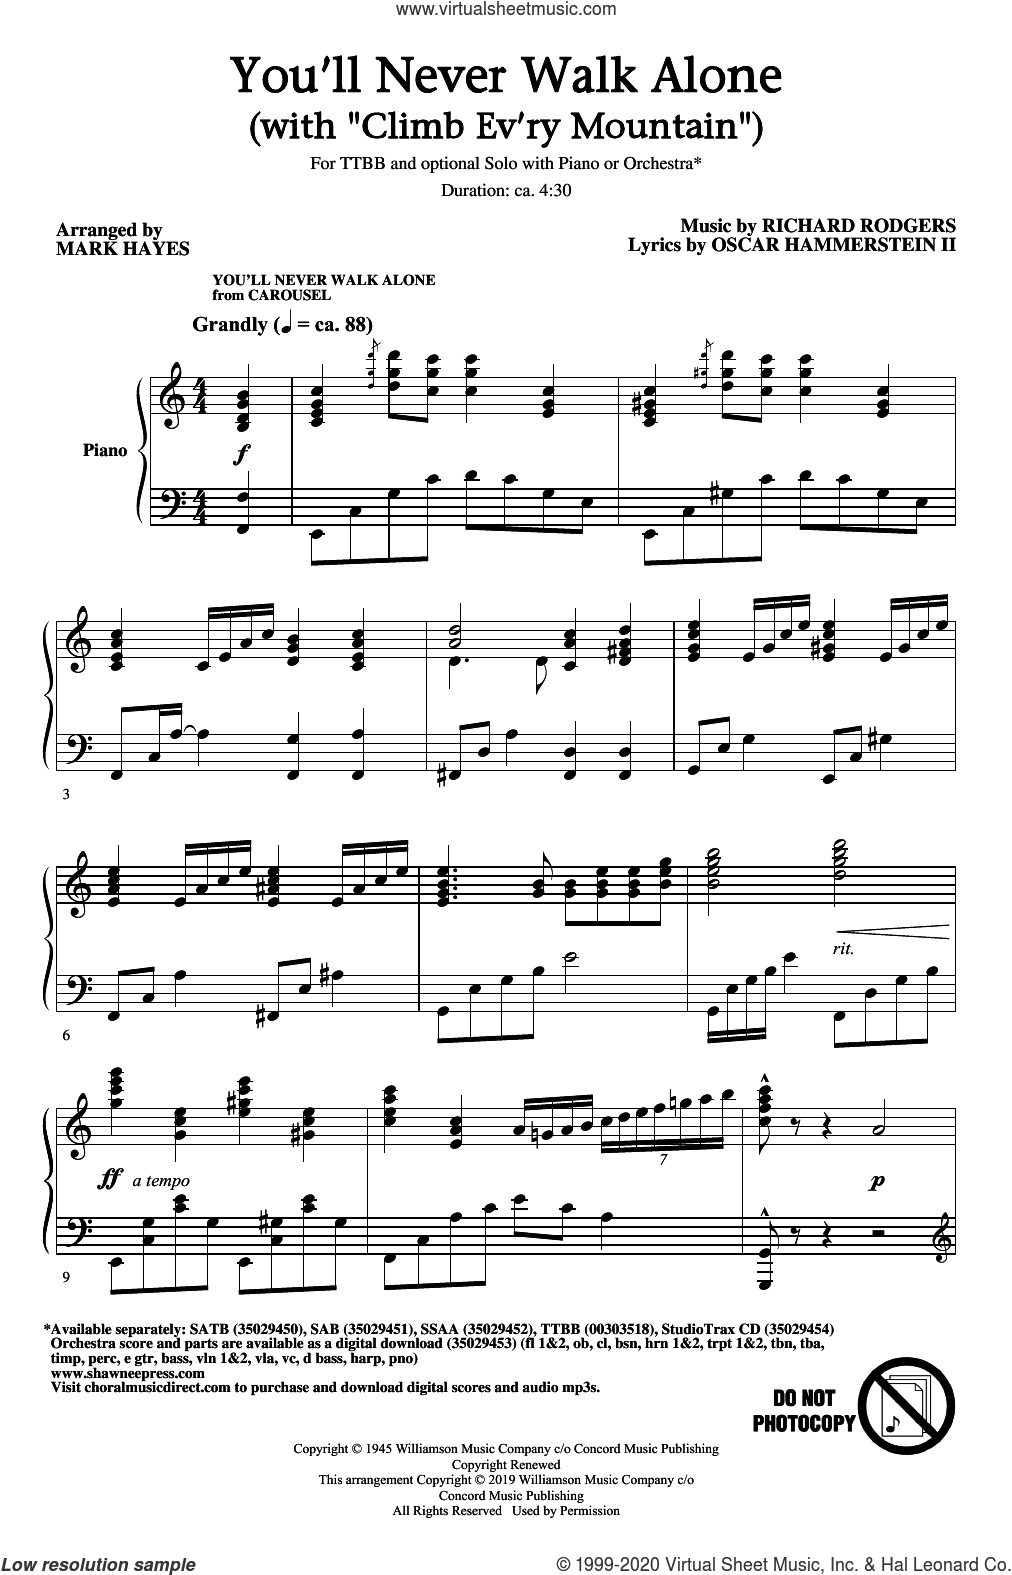 You'll Never Walk Alone (with 'Climb Ev'ry Mountain') (arr. Mark Hayes) sheet music for choir (TTBB: tenor, bass) by Richard Rodgers, Mark Hayes, Oscar II Hammerstein and Rodgers & Hammerstein, intermediate skill level